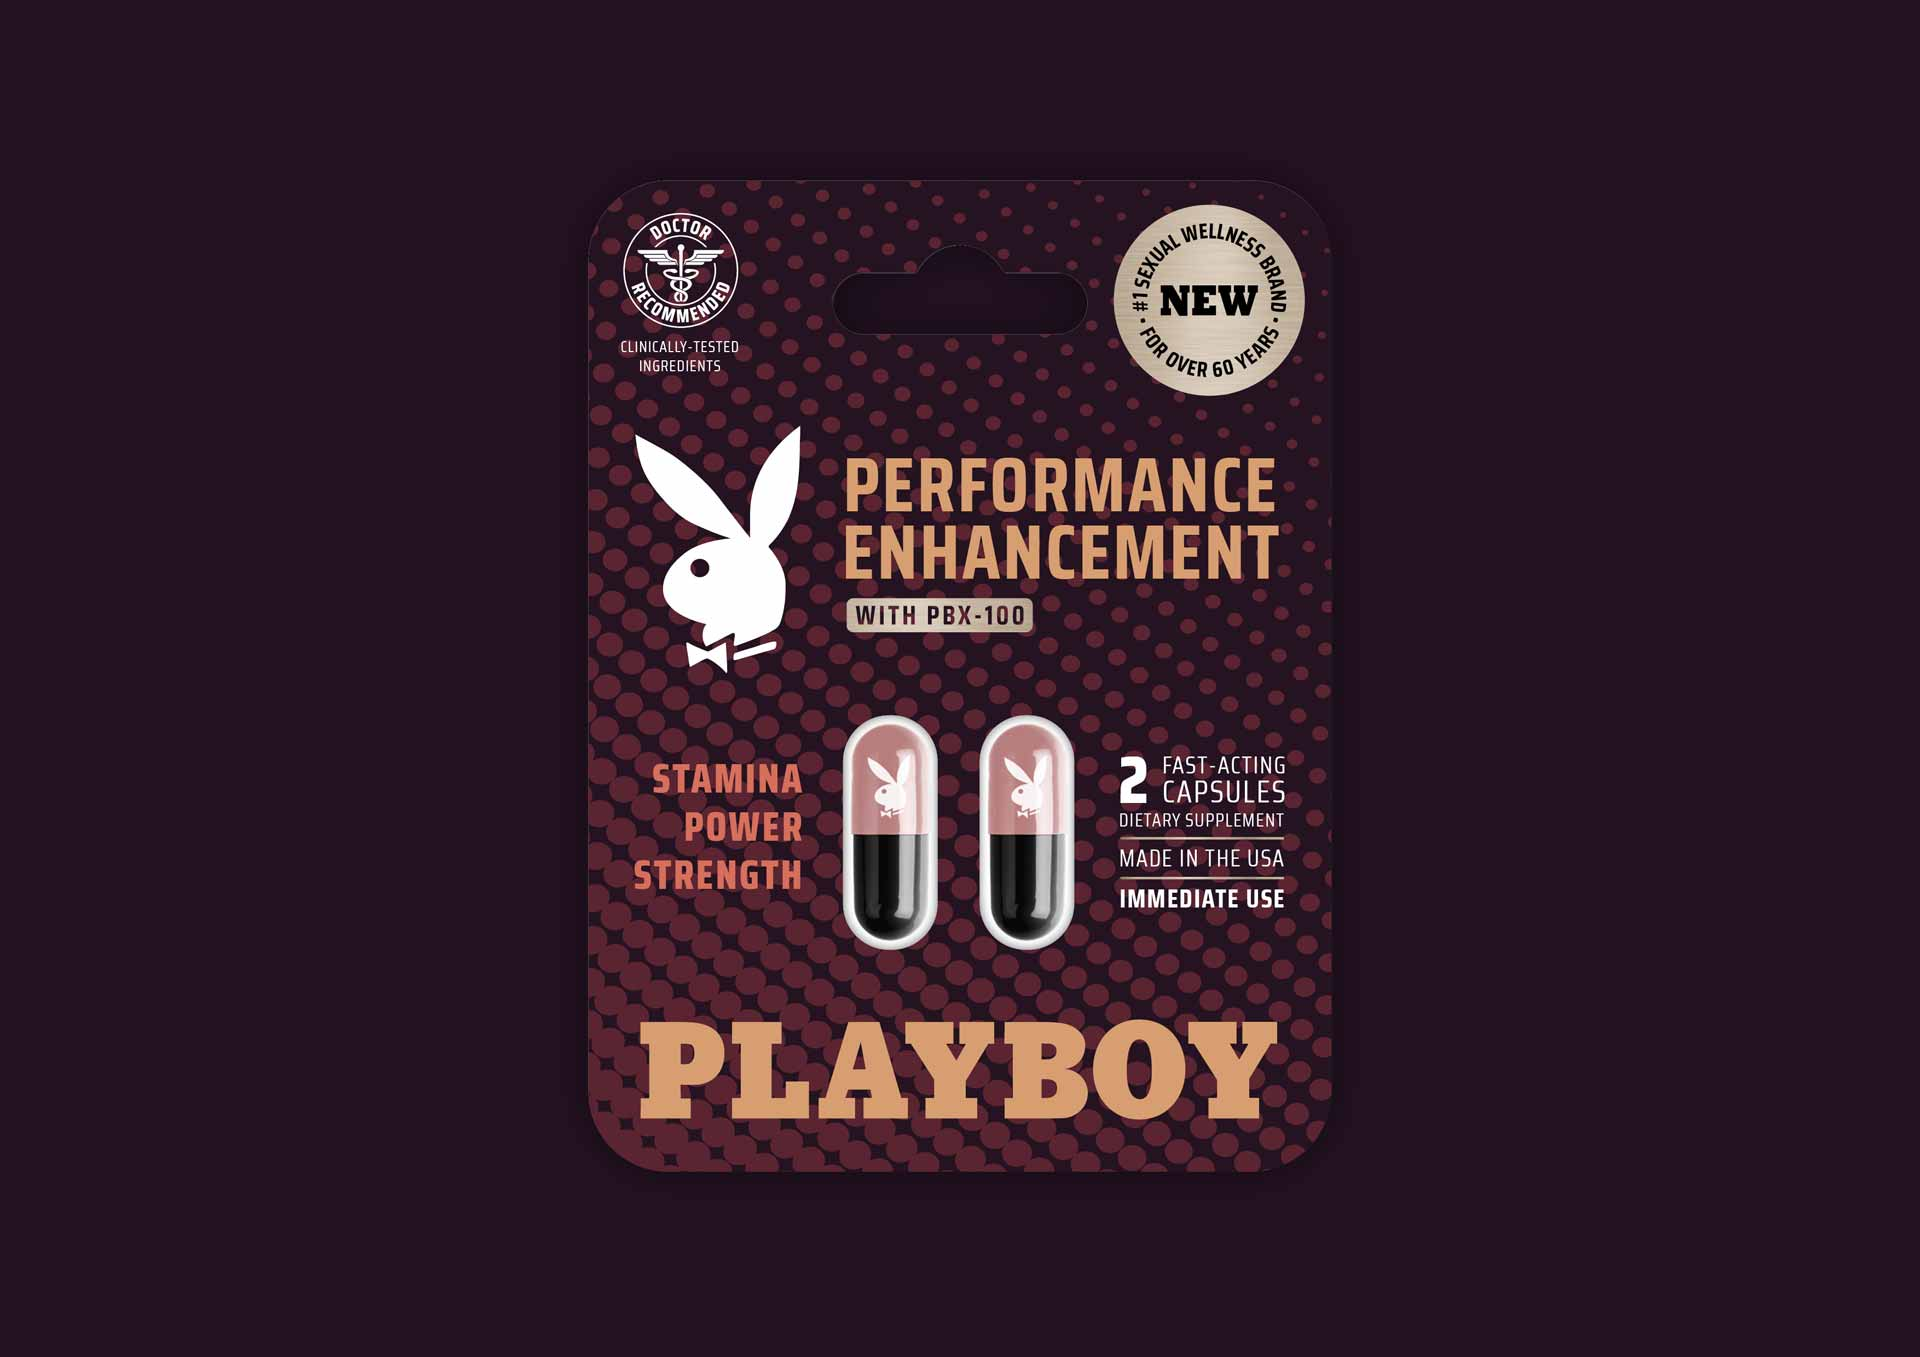 playboy-packaging-19